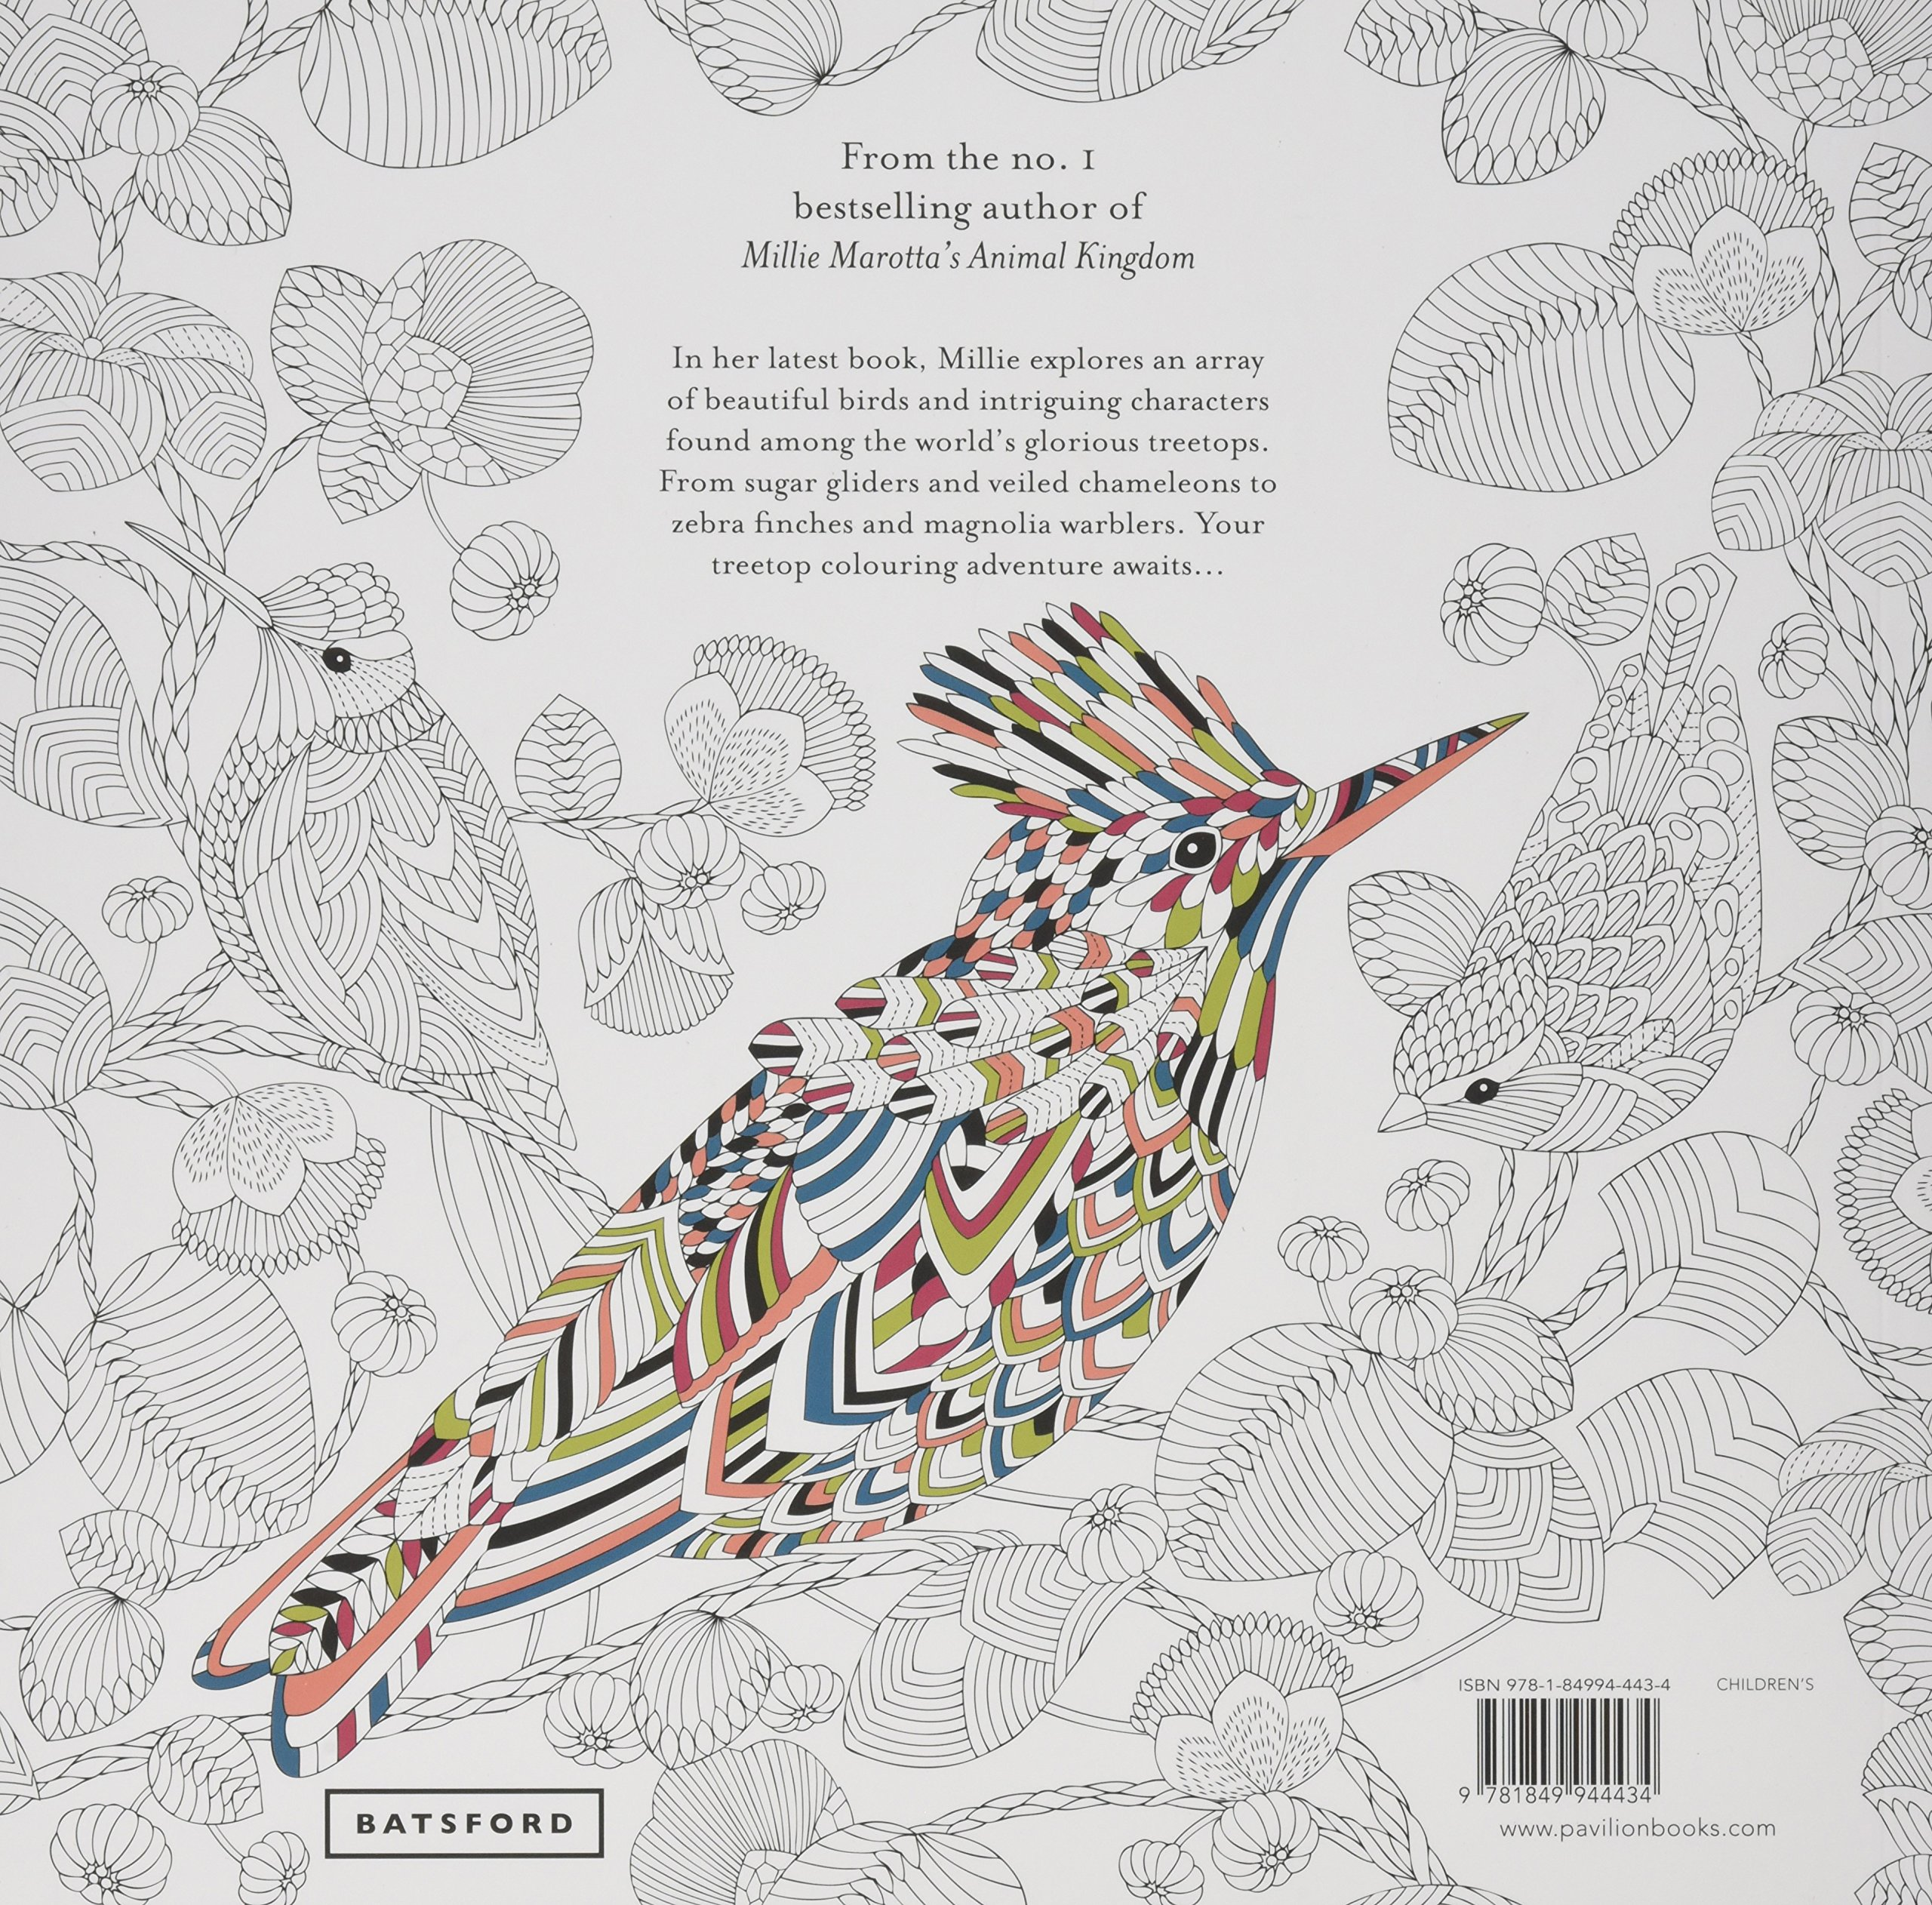 Millie Marottas Beautiful Birds And Treetop Treasures A Colouring Book Adventure Marotta 9781849944434 Books